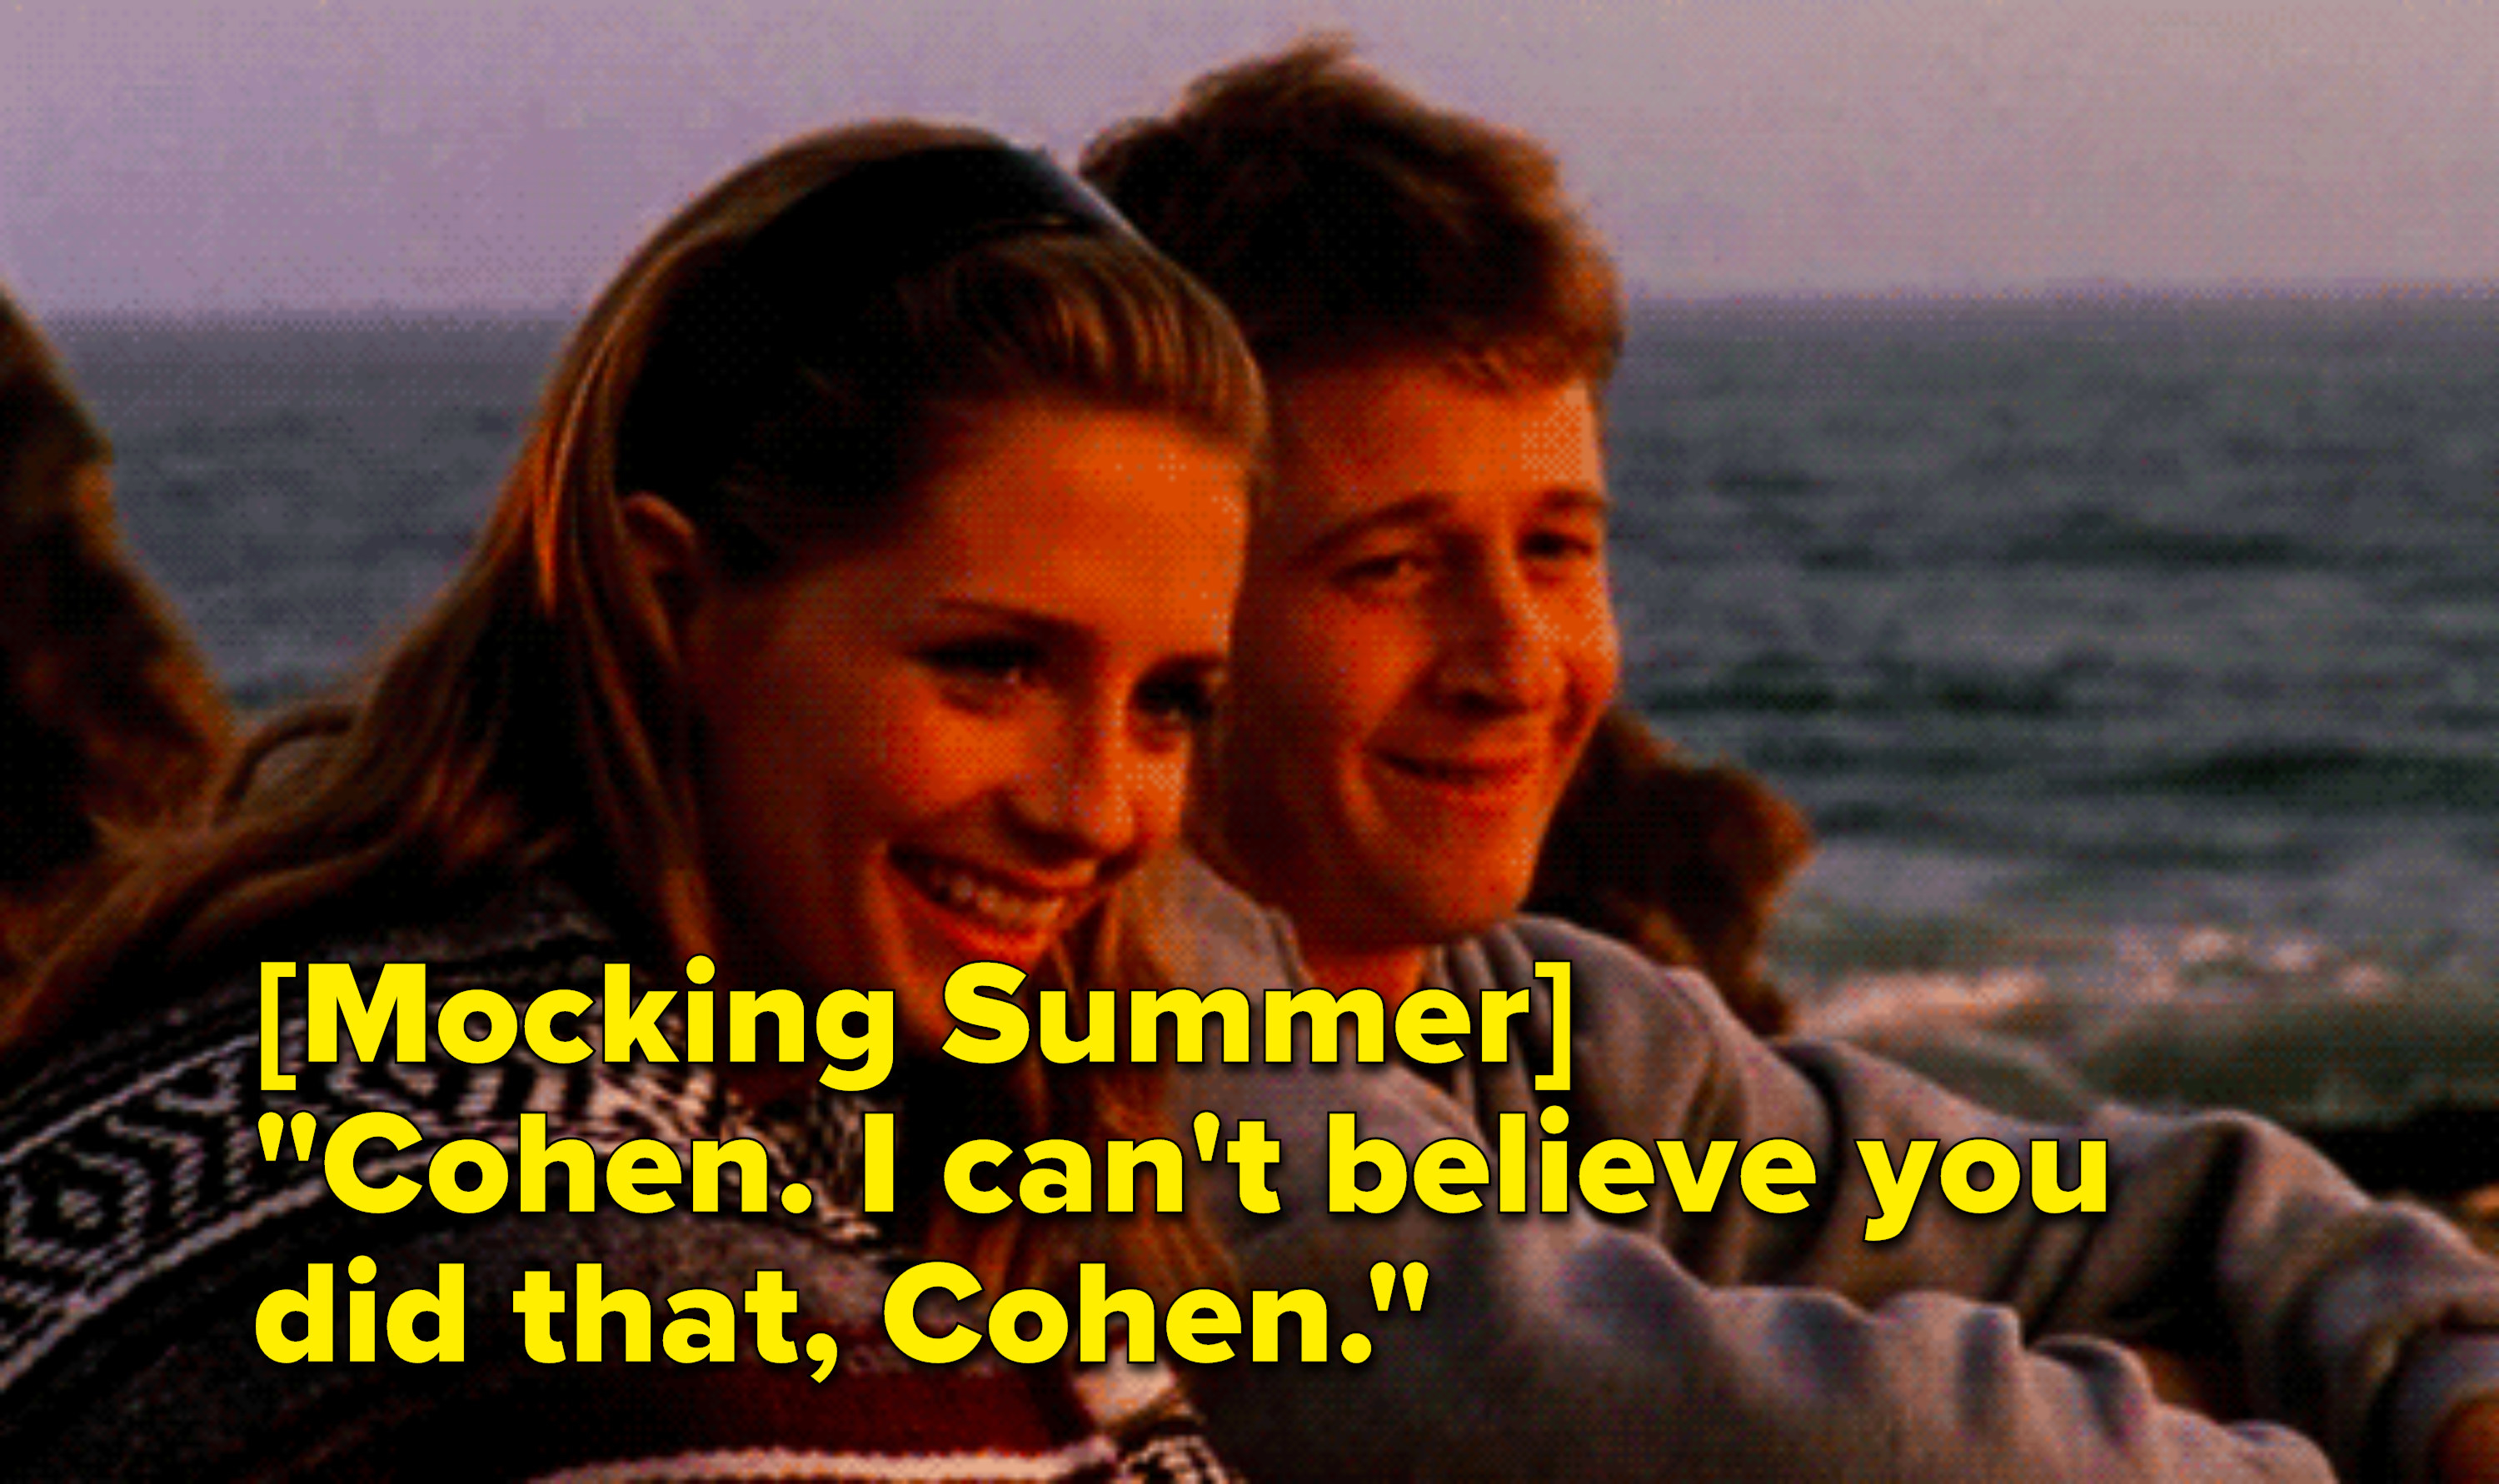 """Ryan mocking Summer: """"Cohen, I can't believe you did that, Cohen"""""""